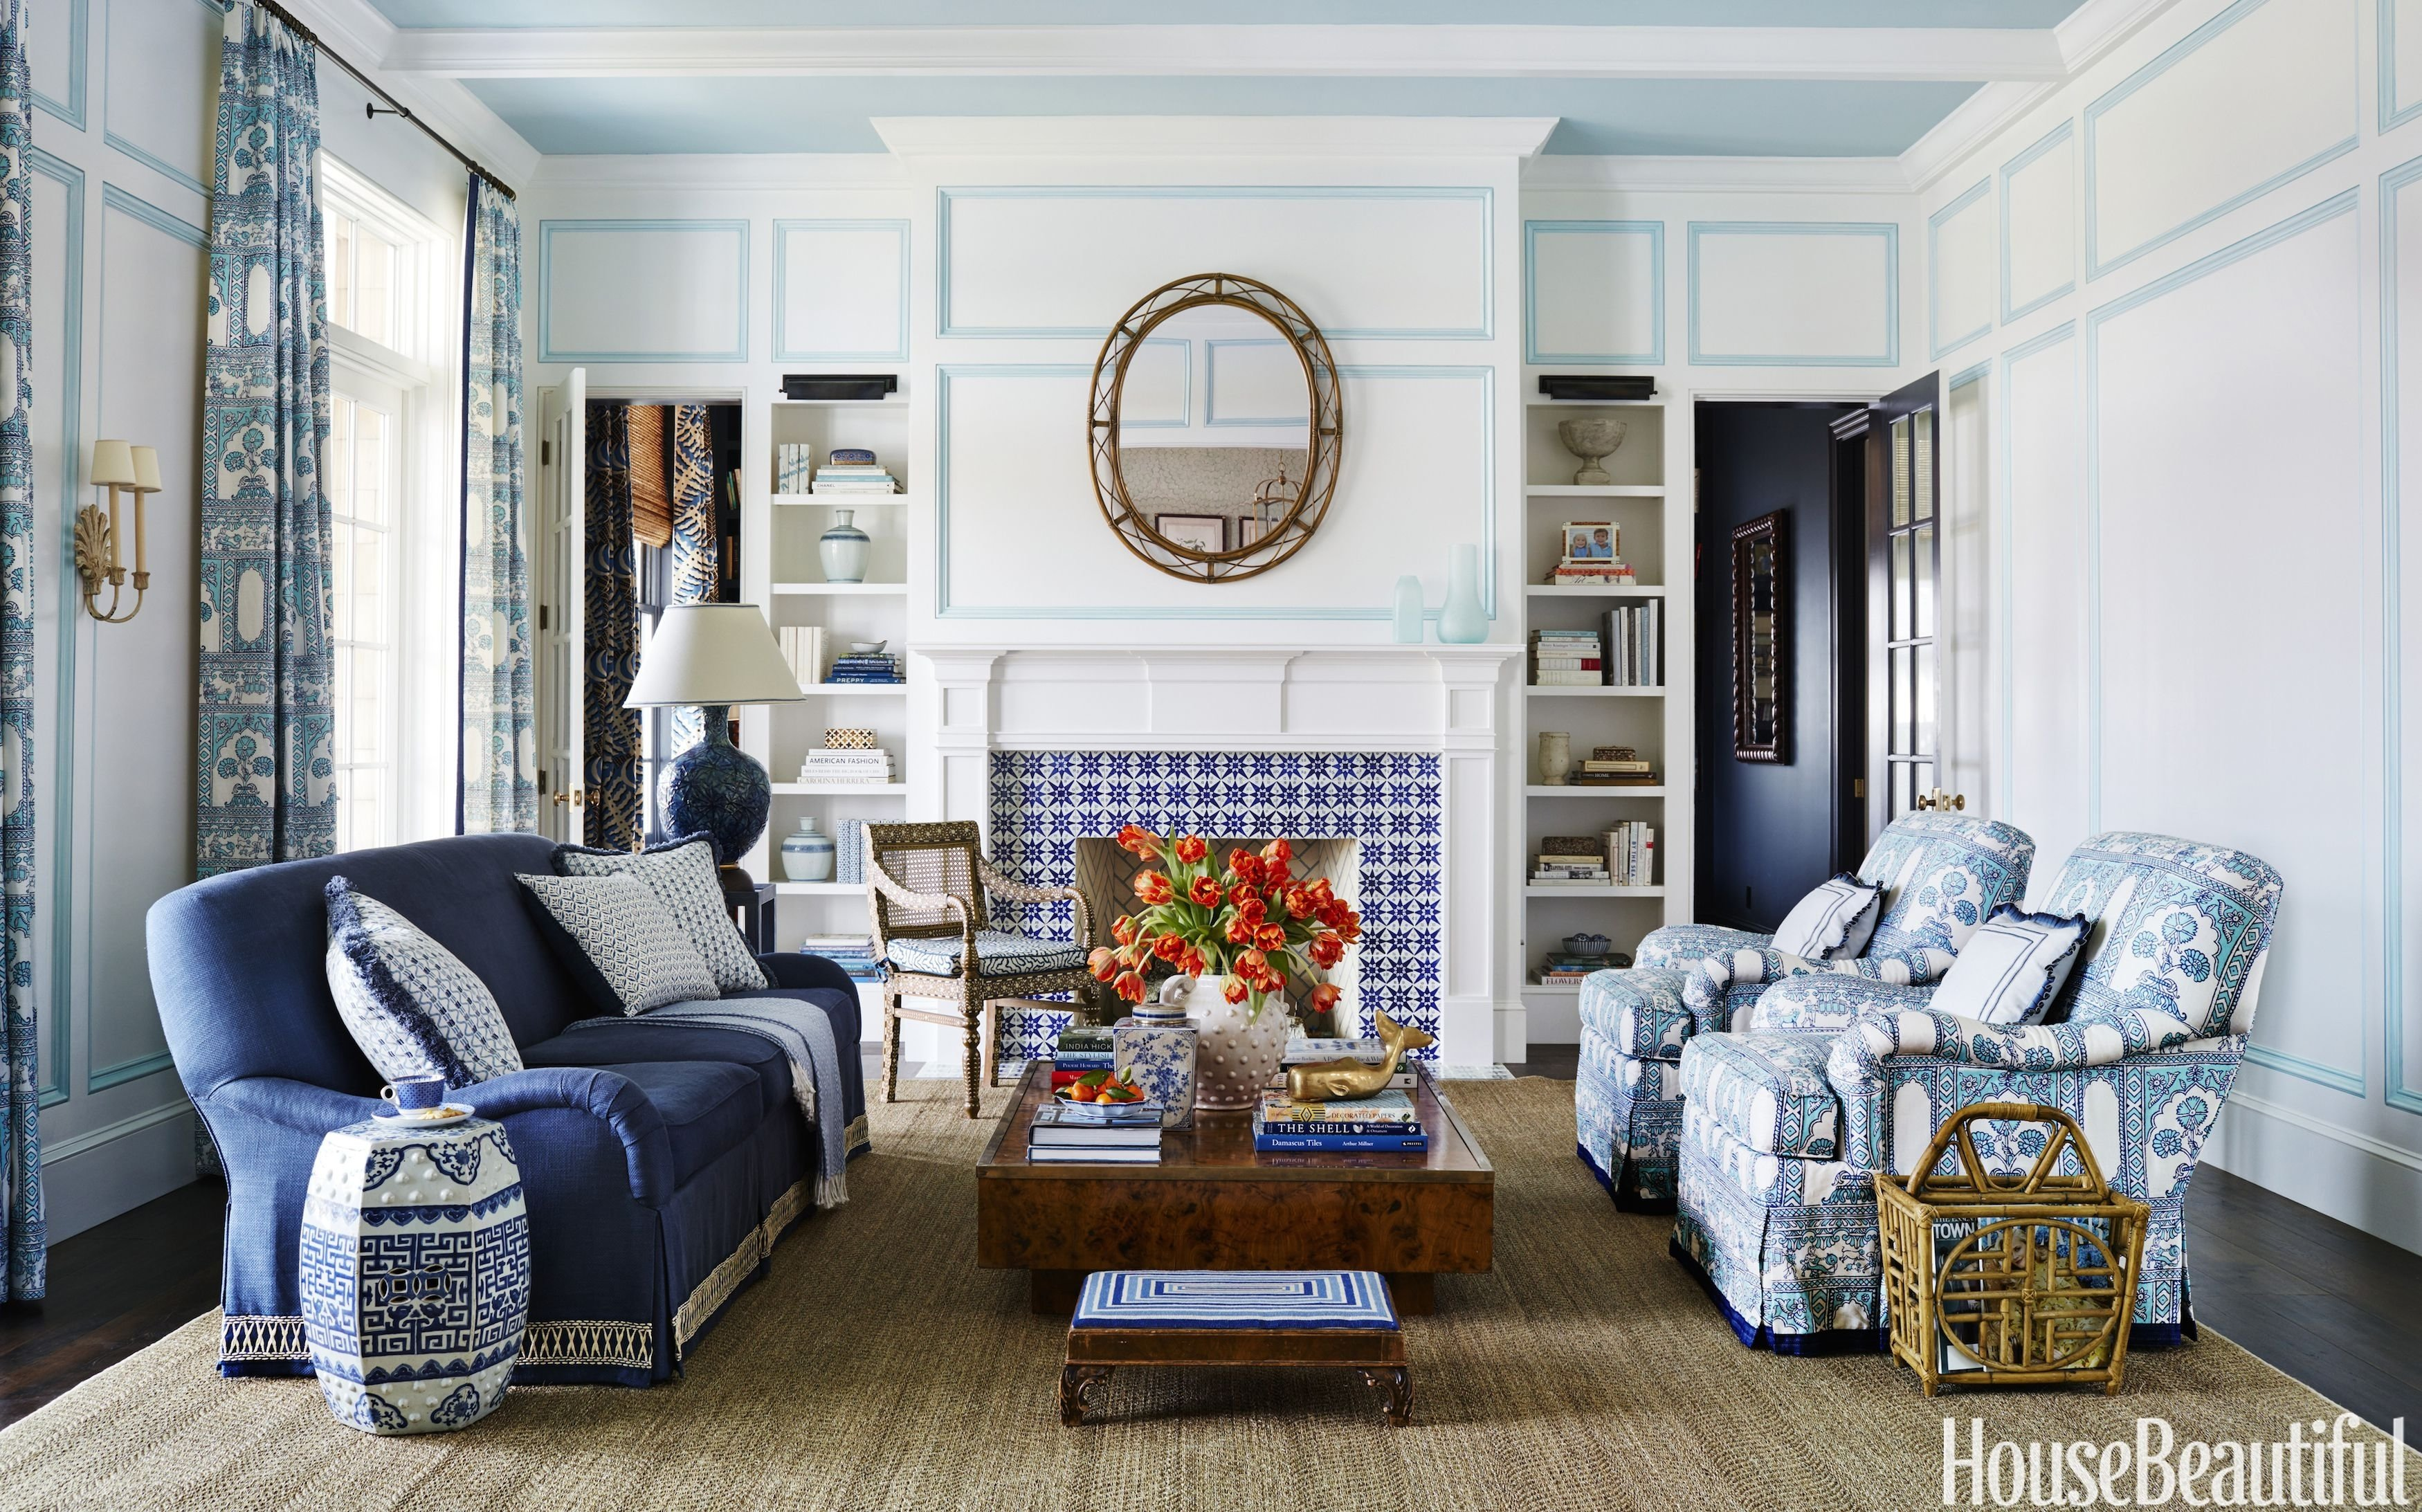 10 Most Recommended Living Room Interior Decorating Ideas 70 best living room decorating ideas designs housebeautiful 5 2020